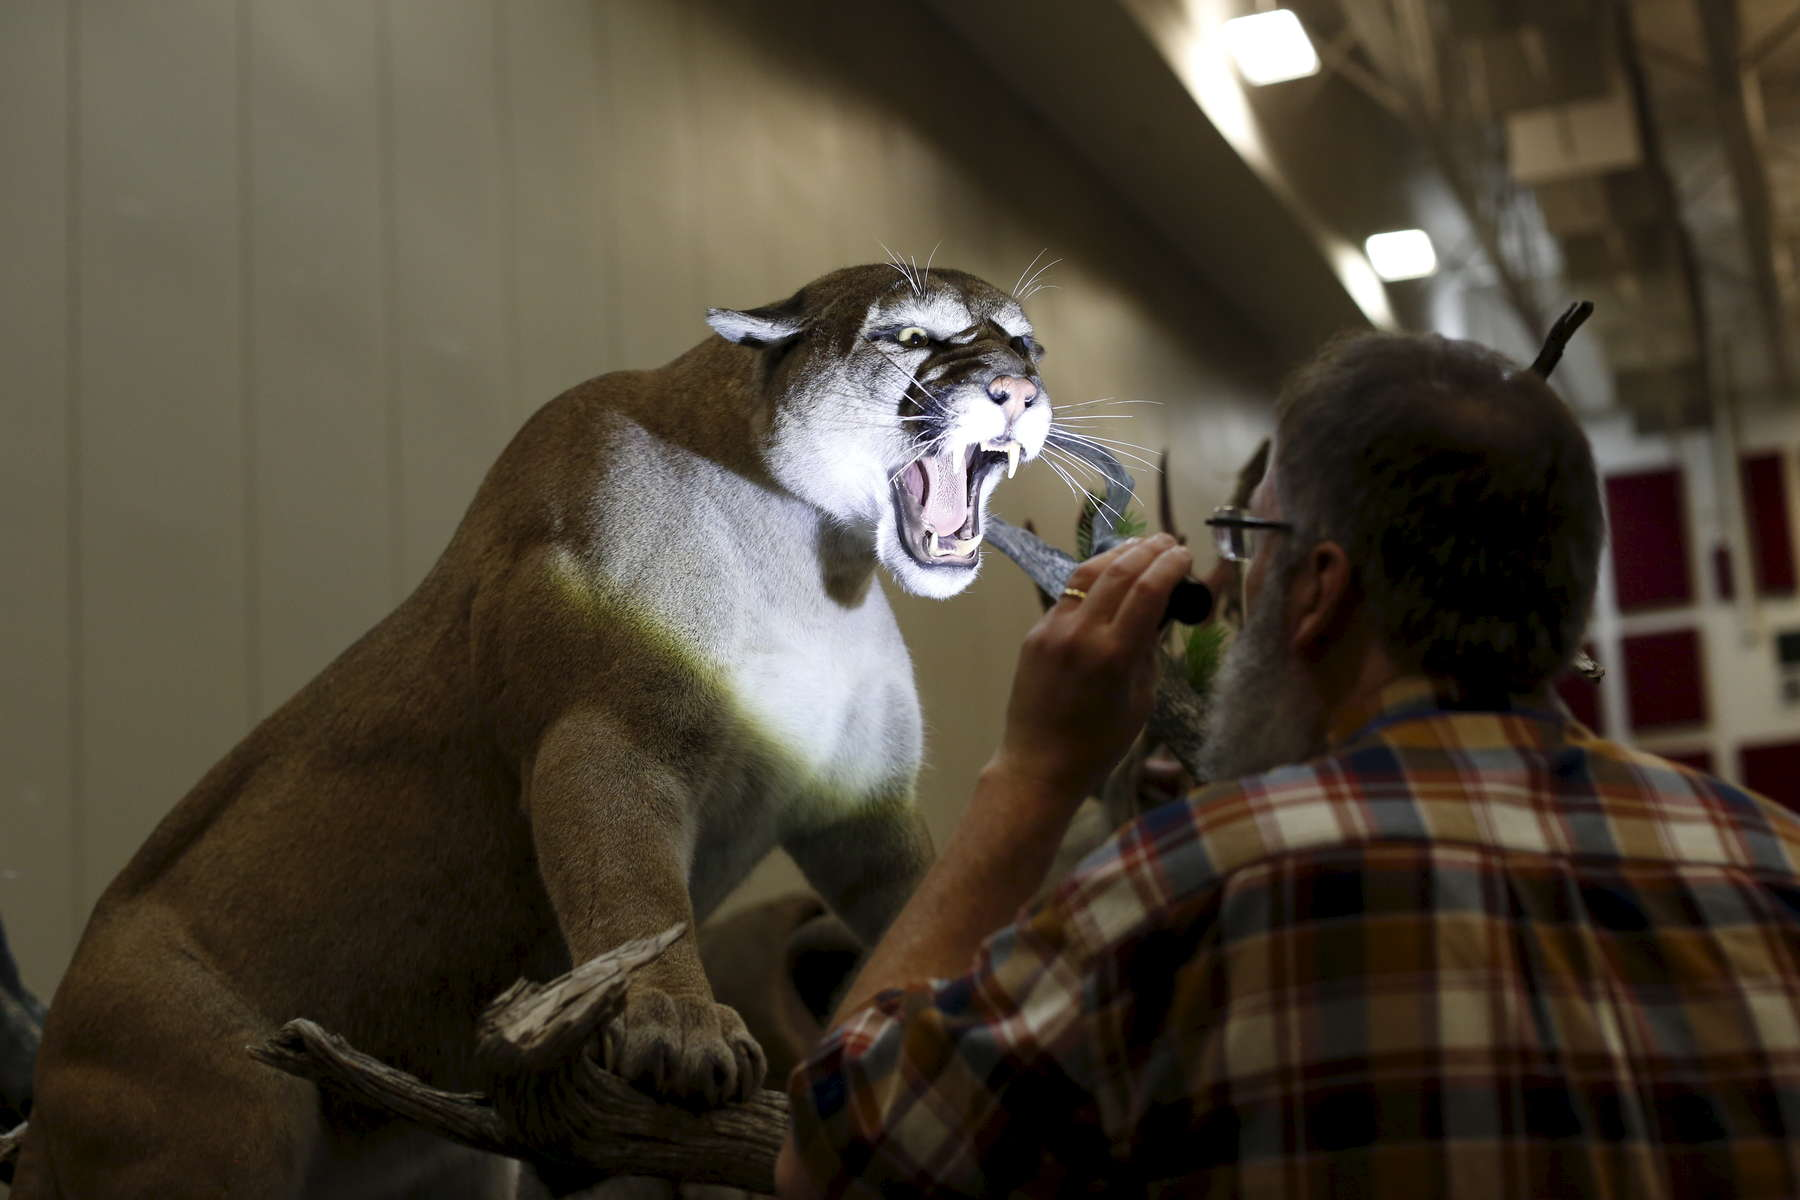 Judge Phil Soucy, looks at an entry during the World Taxidermy & Fish Carving Championships, at the Springfield Expo Center, in Springfield, Missouri on May 1, 2019.